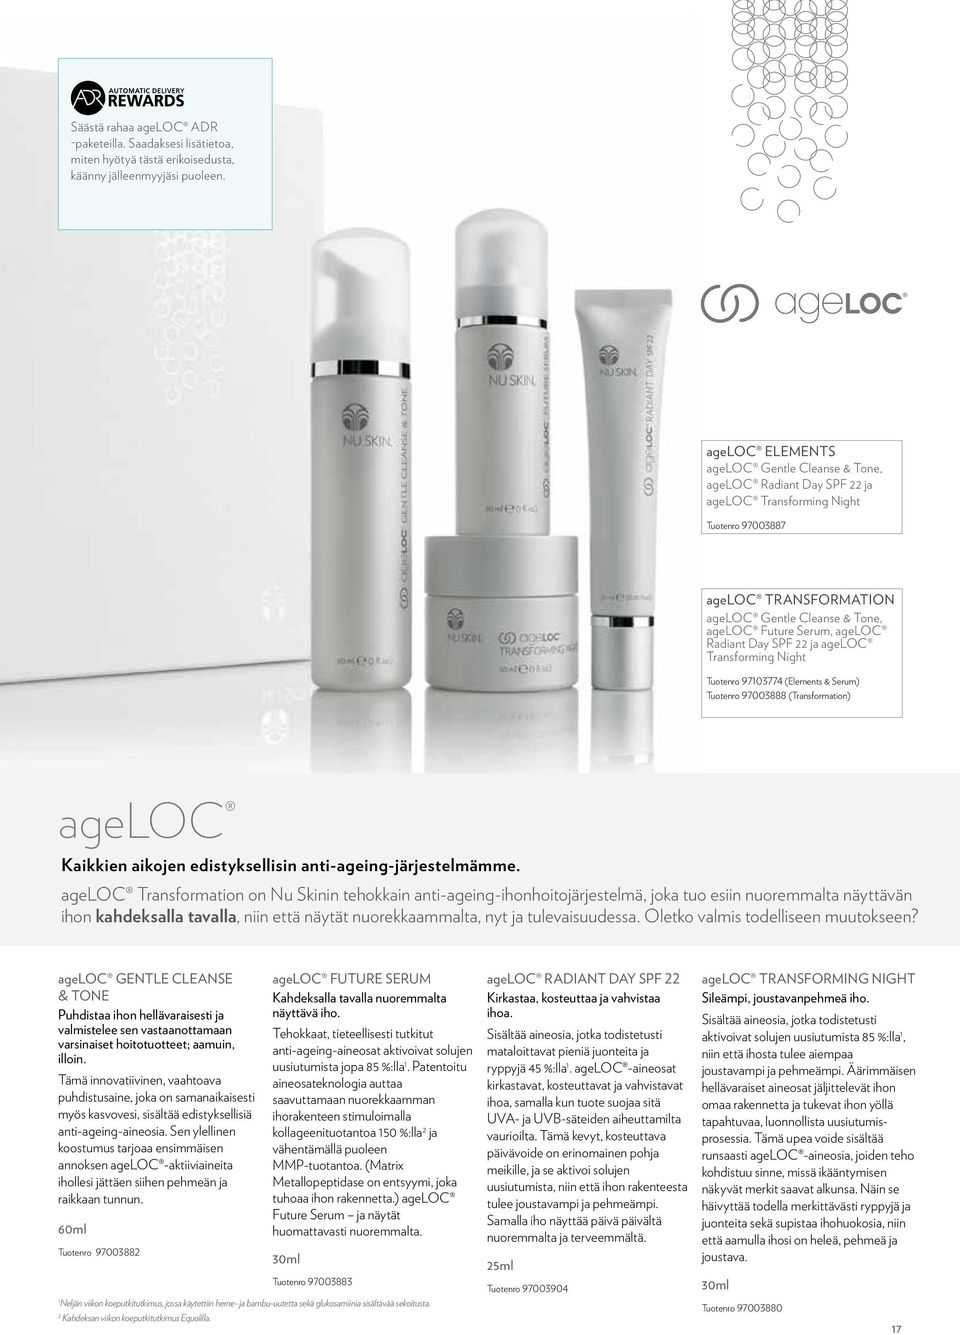 Radiant Day SPF 22 ja ageloc Transforming Night Tuotenro 97103774 (Elements & Serum) Tuotenro 97003888 (Transformation) ageloc Kaikkien aikojen edistyksellisin anti-ageing-järjestelmämme.